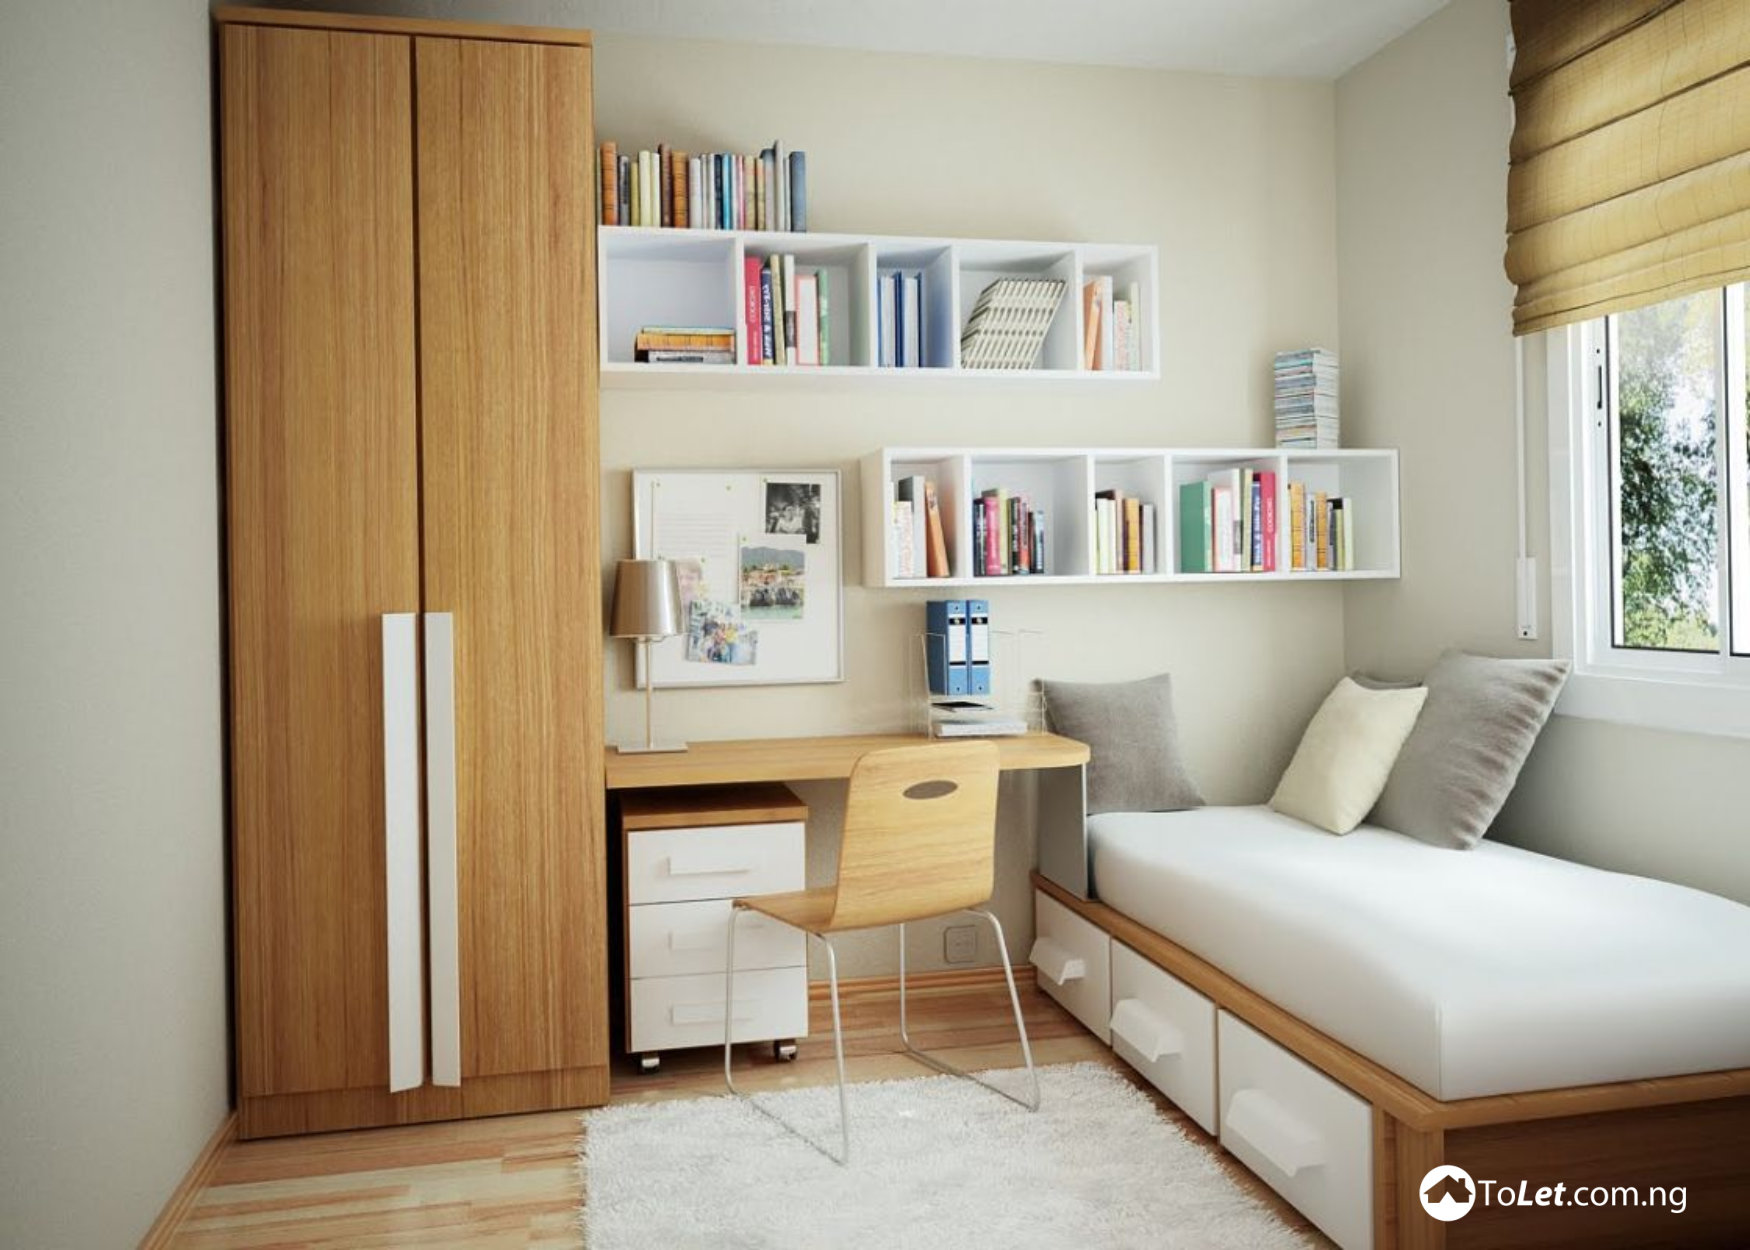 A Mini Flat Is An Apartment Consisting Of Sitting Room Bedroom Toilet And Kitchen Renting In Nigeria Has Become The Choice Many